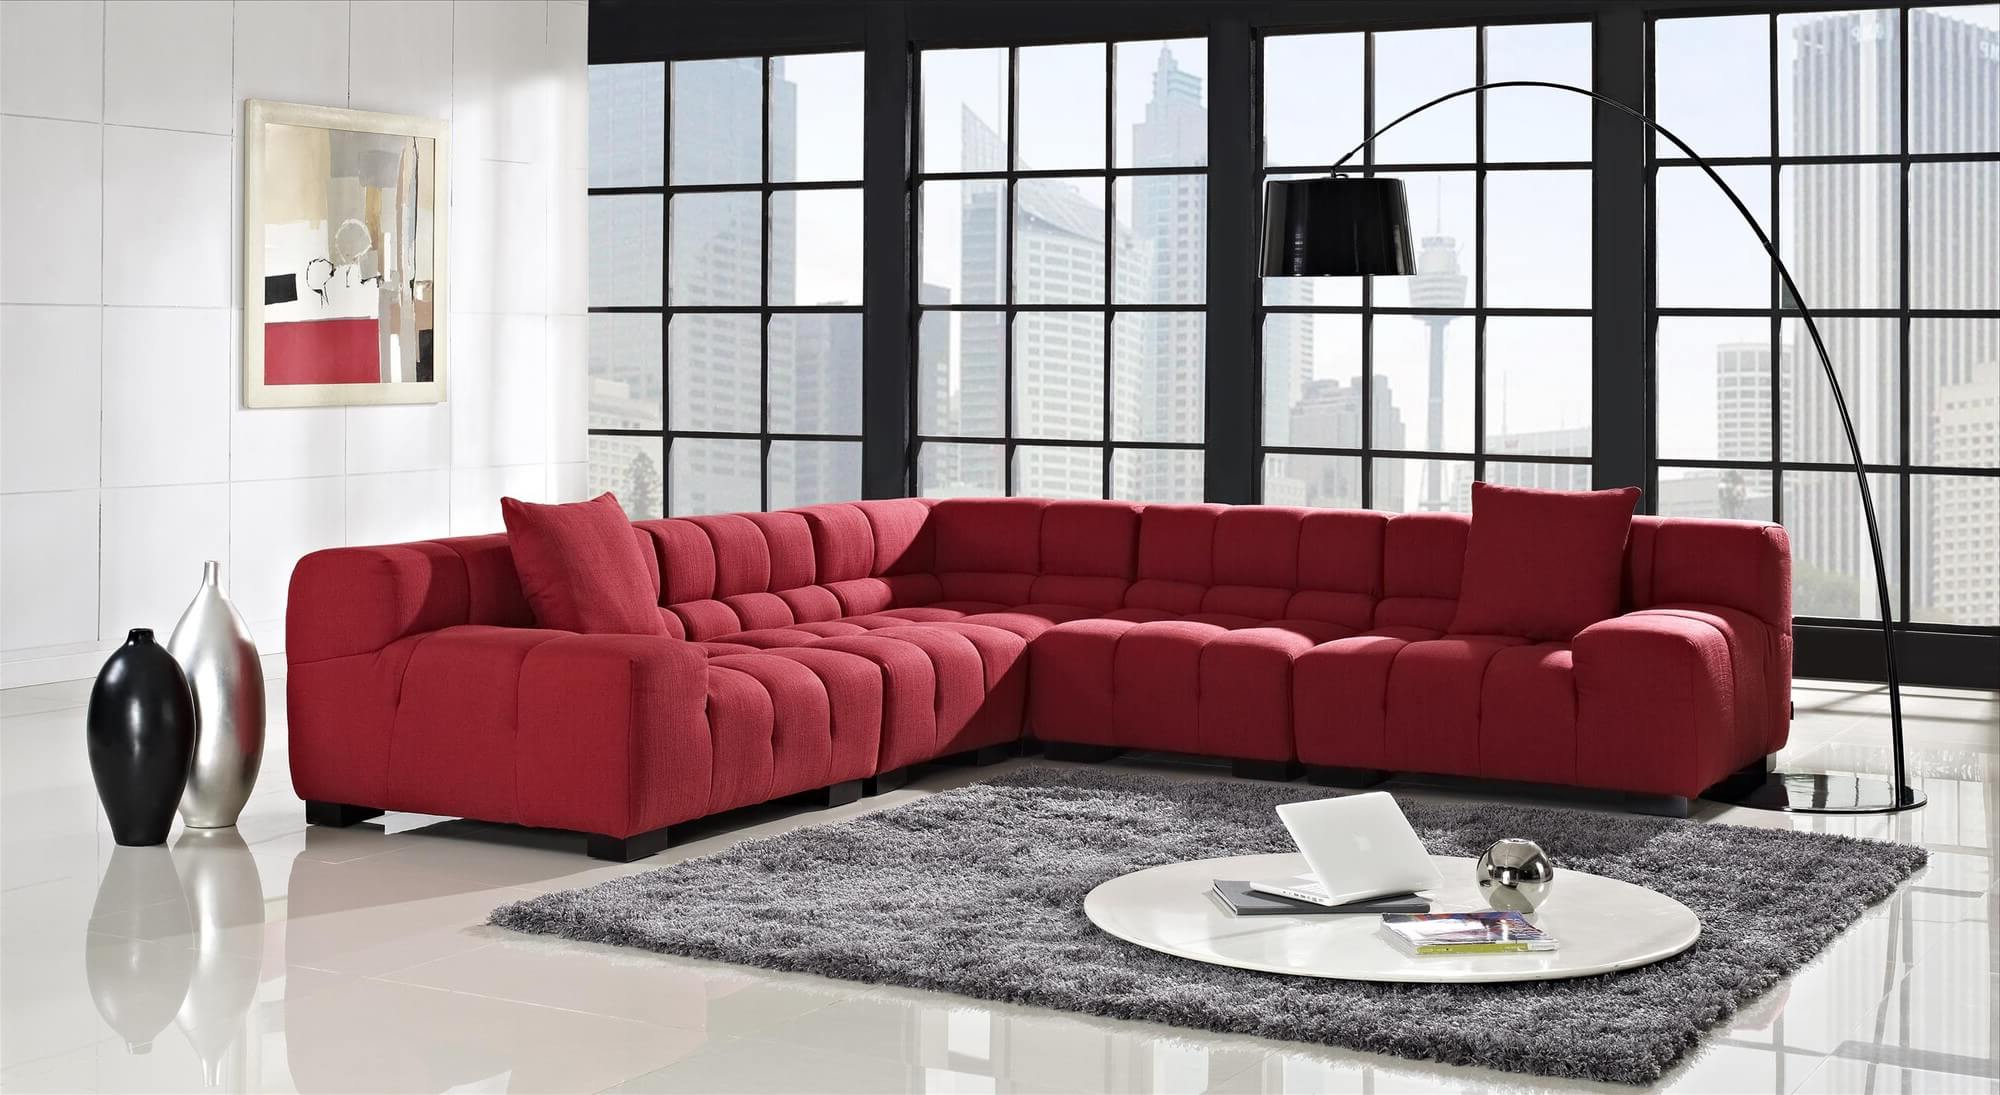 18 Stylish Modern Red Sectional Sofas With 2017 Mireille Modern And Contemporary Fabric Upholstered Sectional Sofas (View 13 of 25)